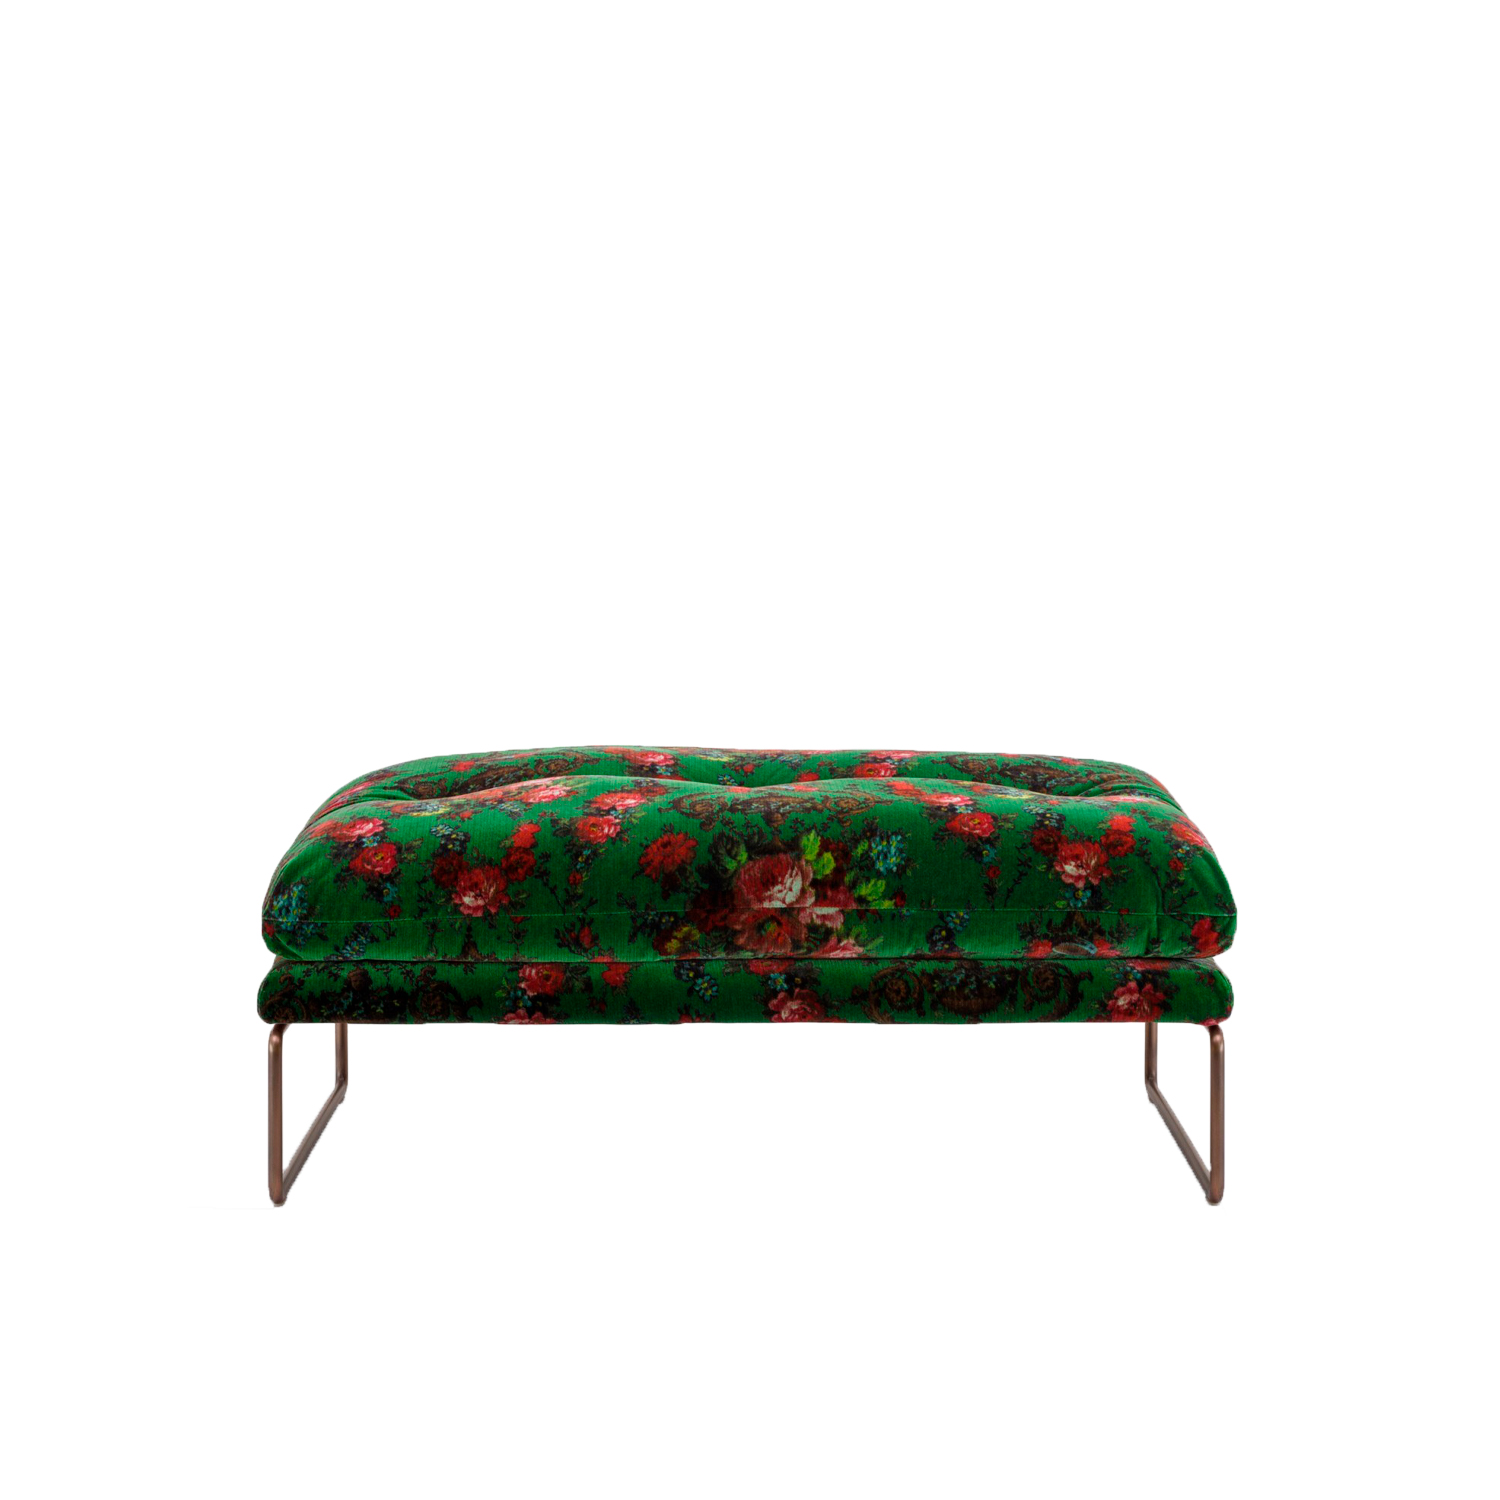 New York Suite Footstool - New York Suite is a Sled base upholstered fabric footstool, part of the homonymous collection.‎